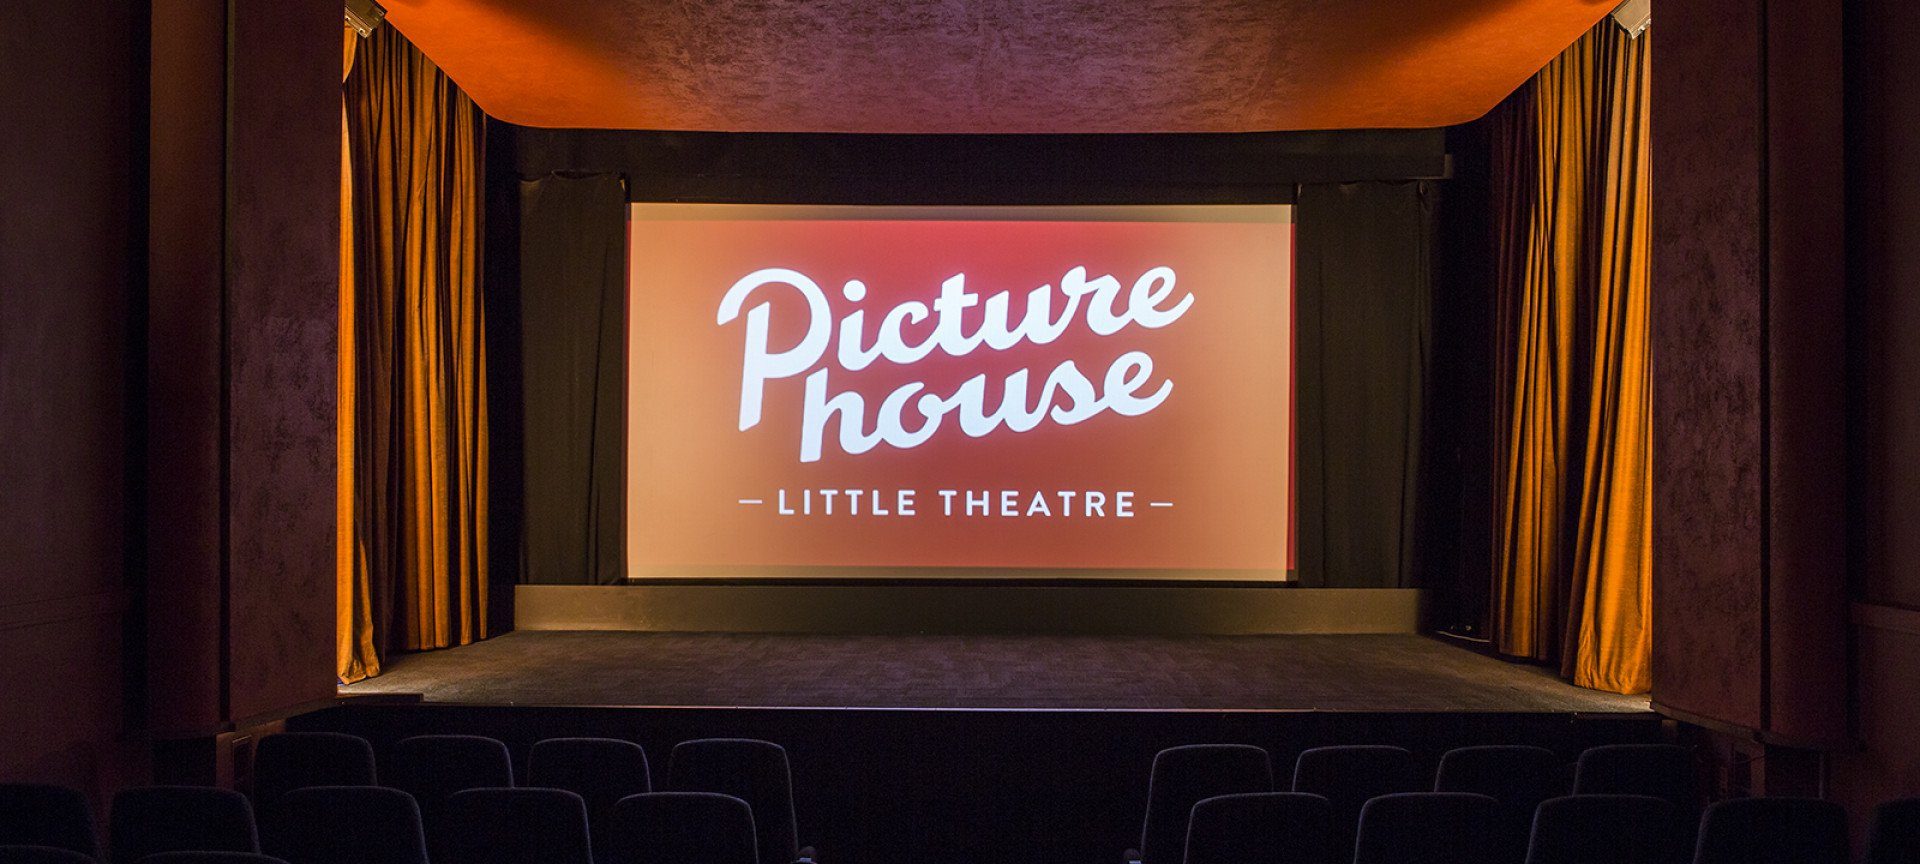 Welcome to  <br>The Little Theatre  Cinema